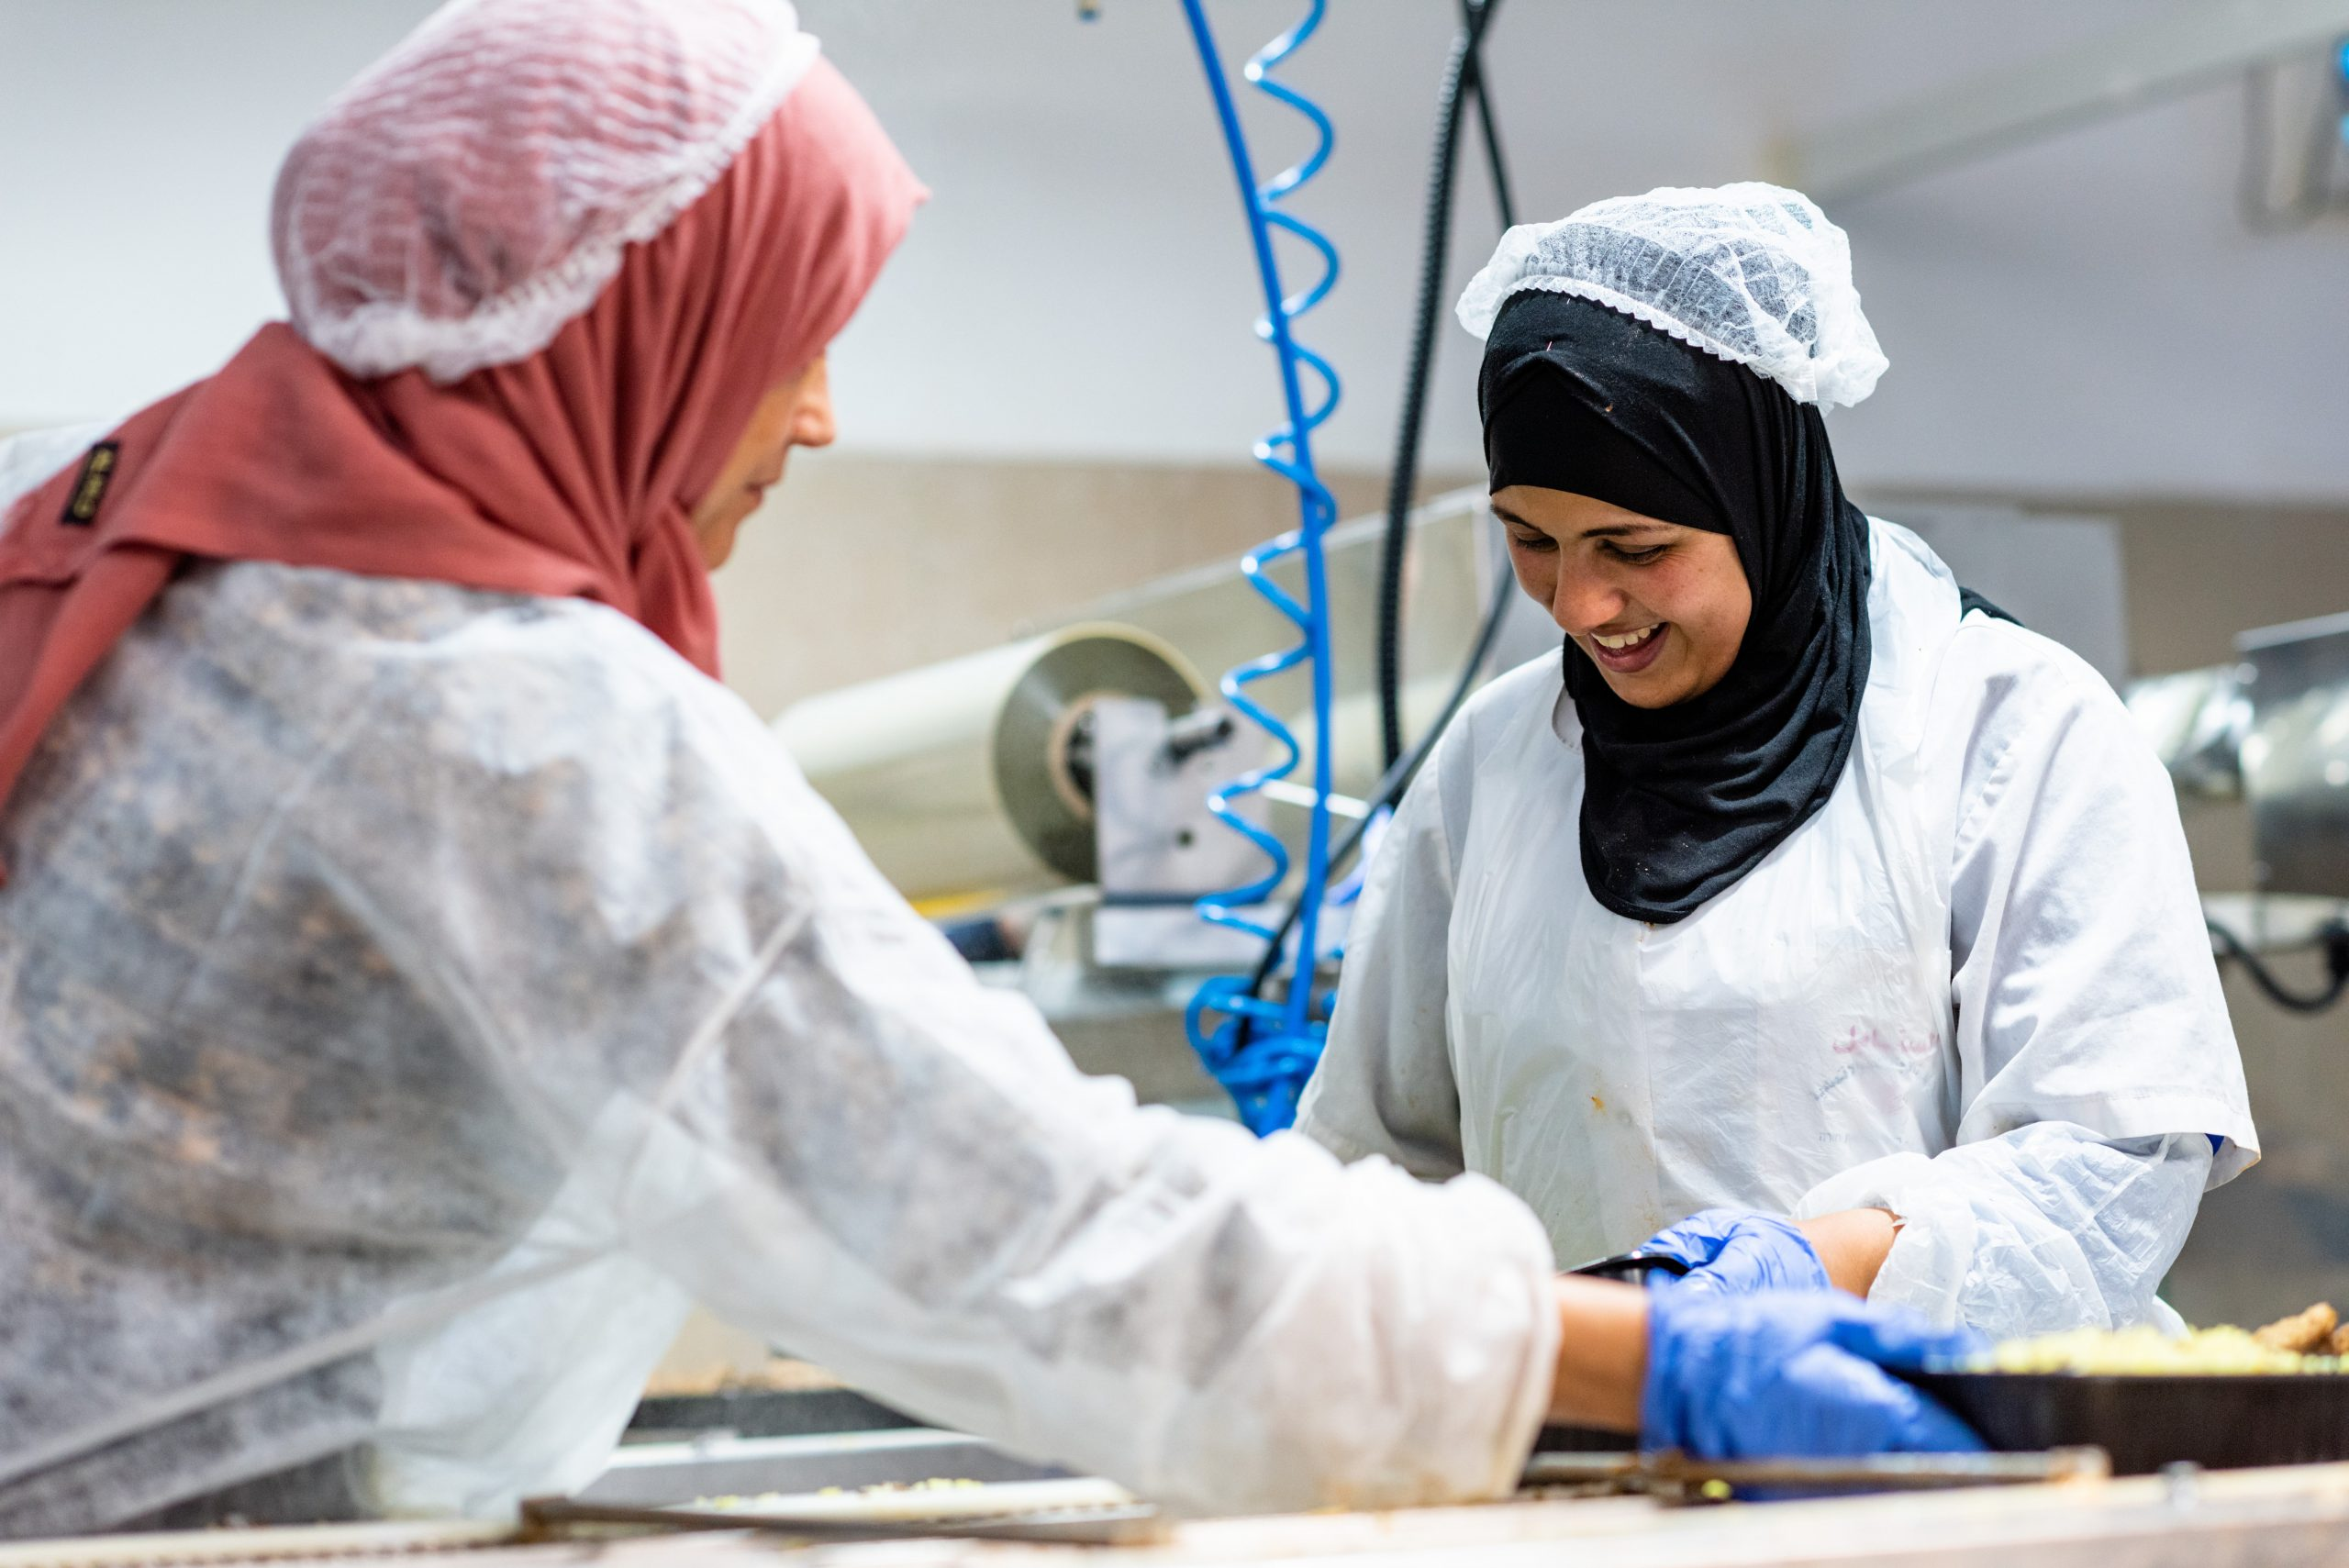 Si3 - Social Impact Investments in Israel: the Al-Sanabel Catering enterprise.